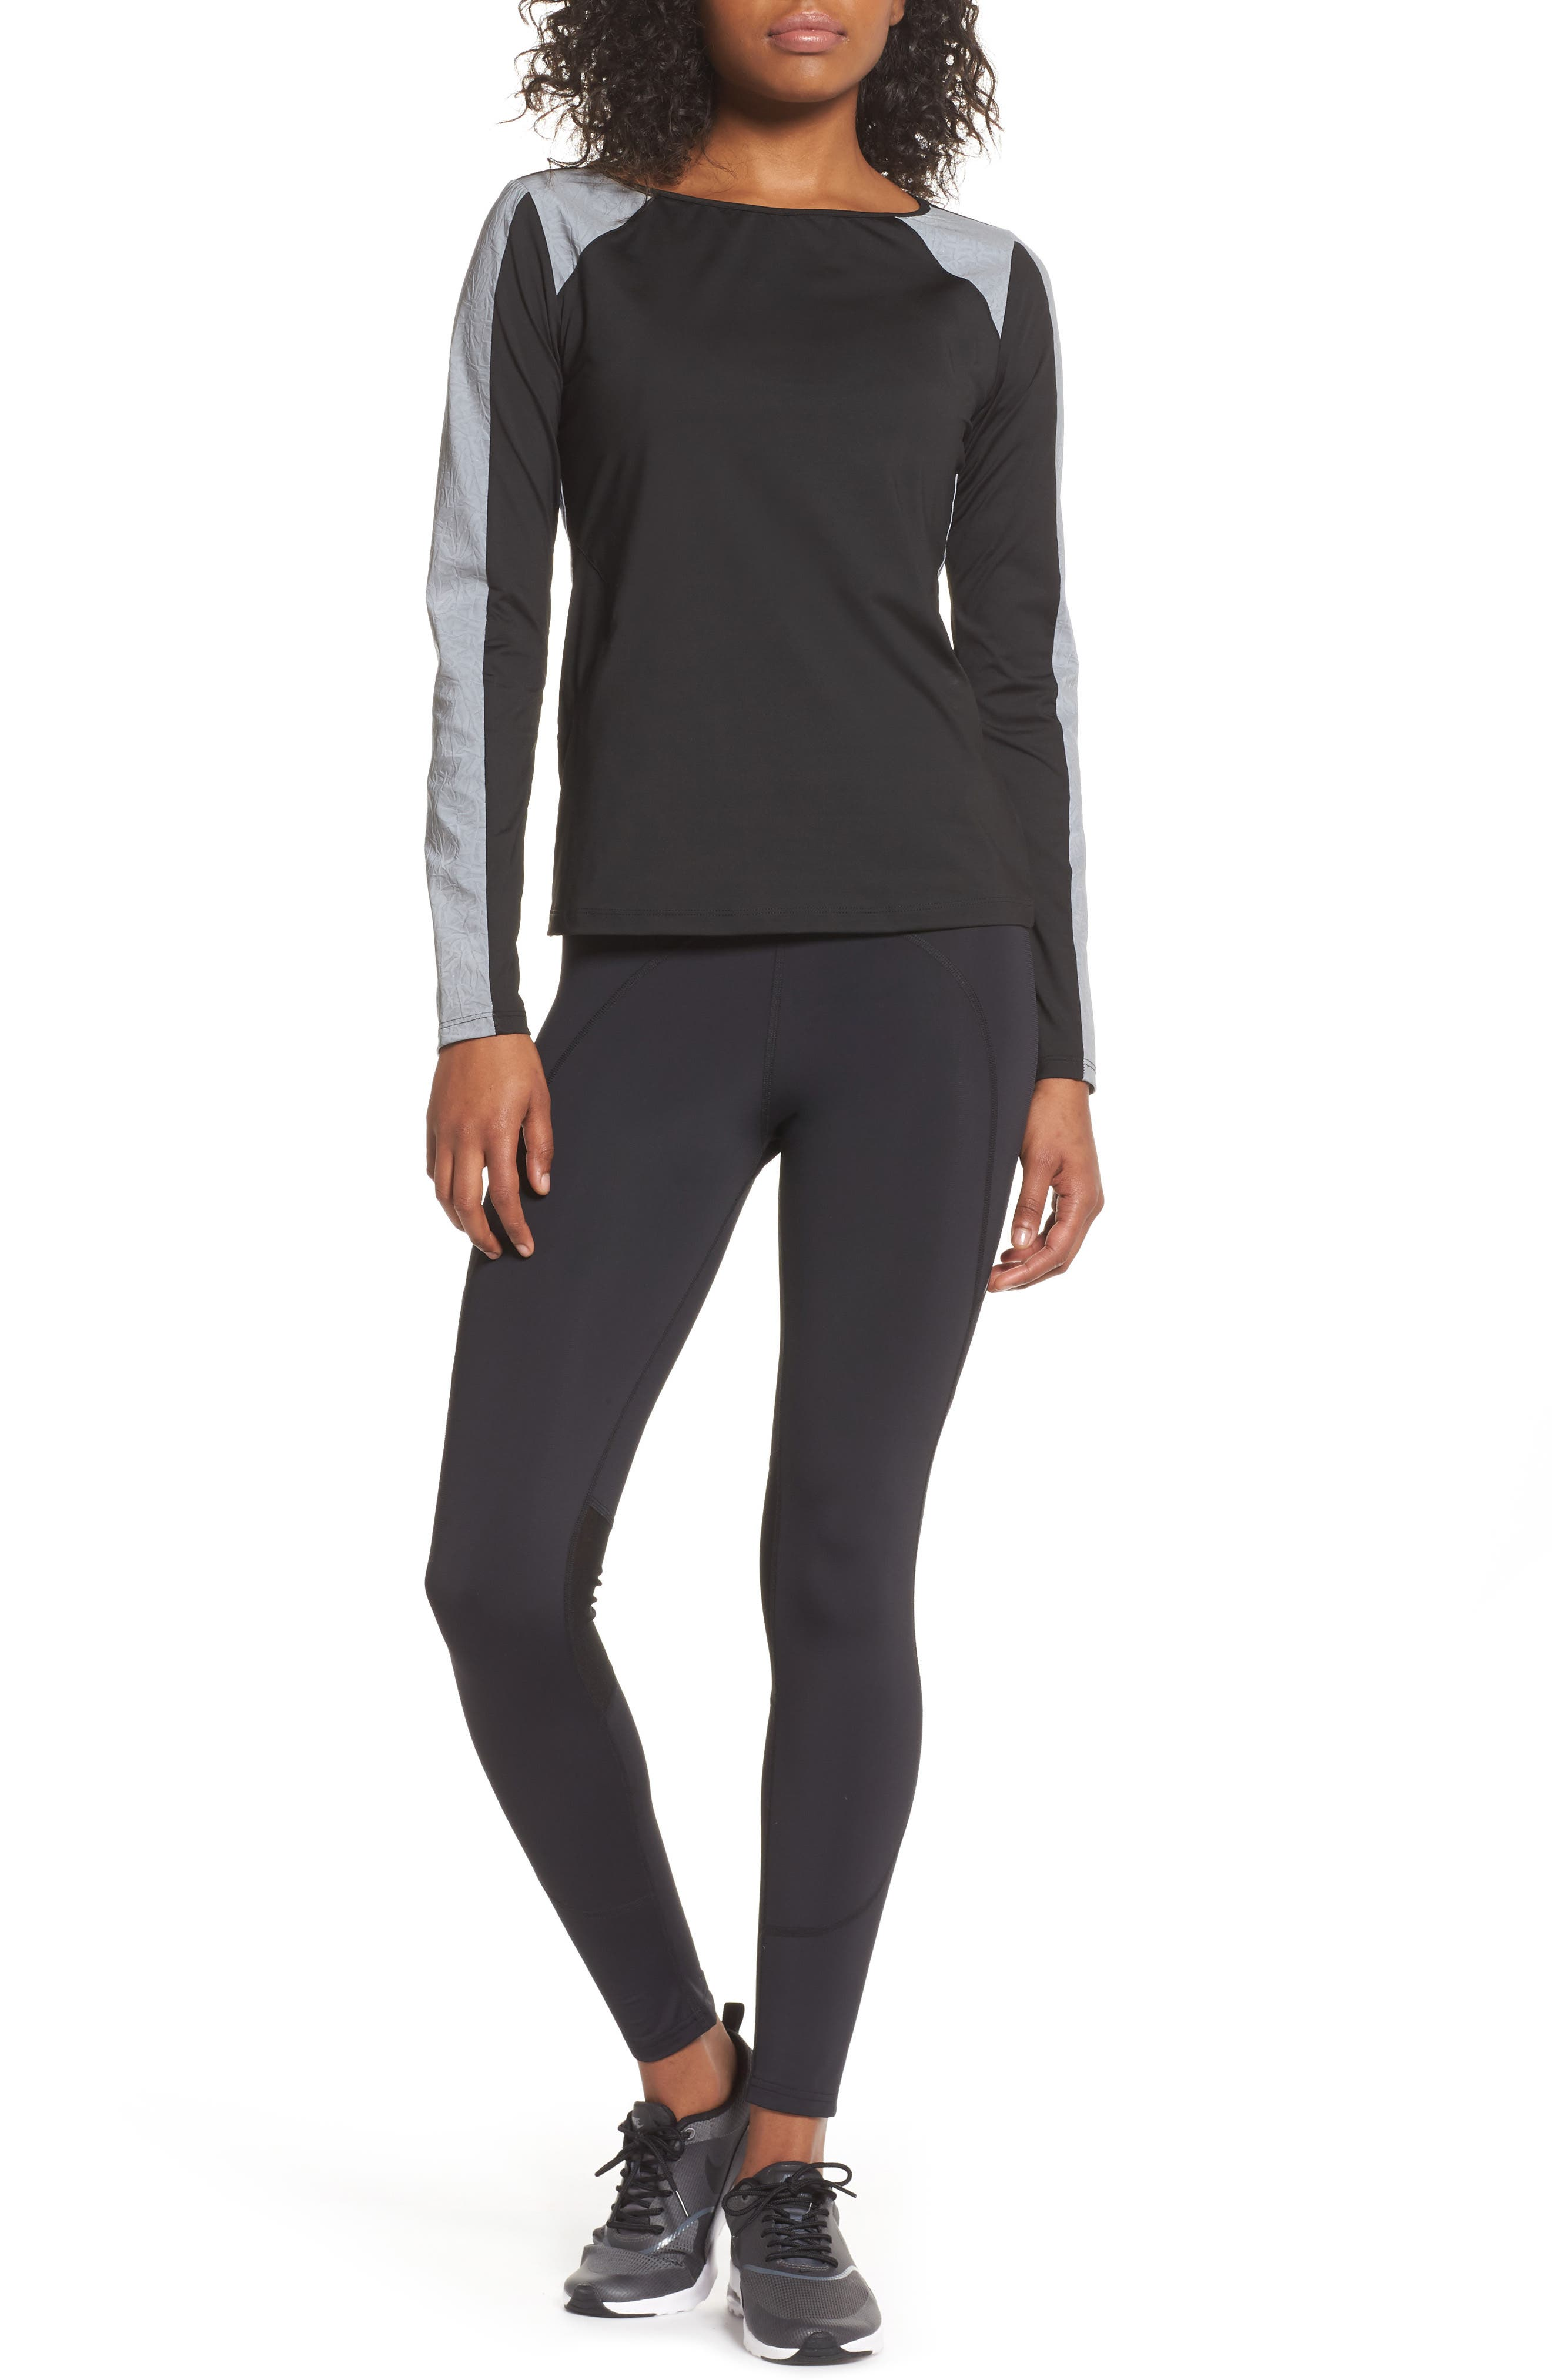 BoomBoom Athletica Reflective Body-Con Long Sleeve Tee,                             Alternate thumbnail 8, color,                             005